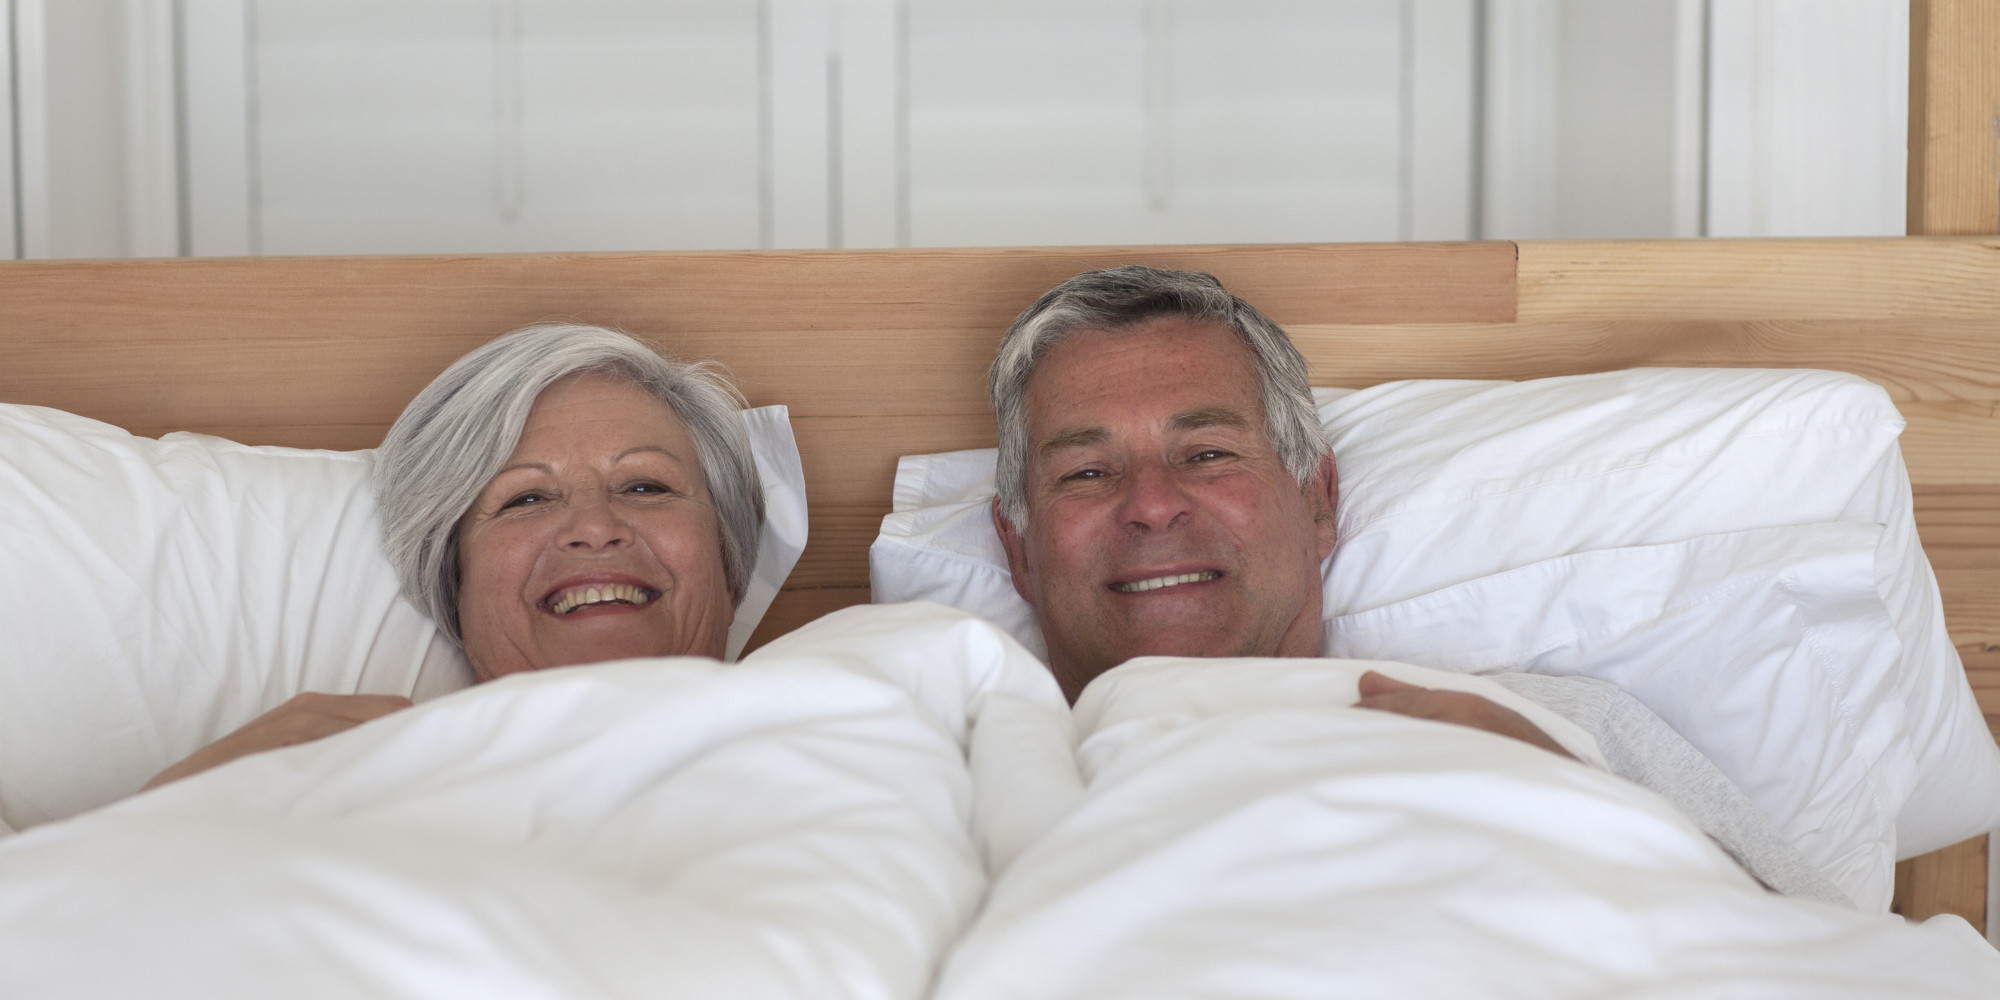 Sex among retirement age citizens